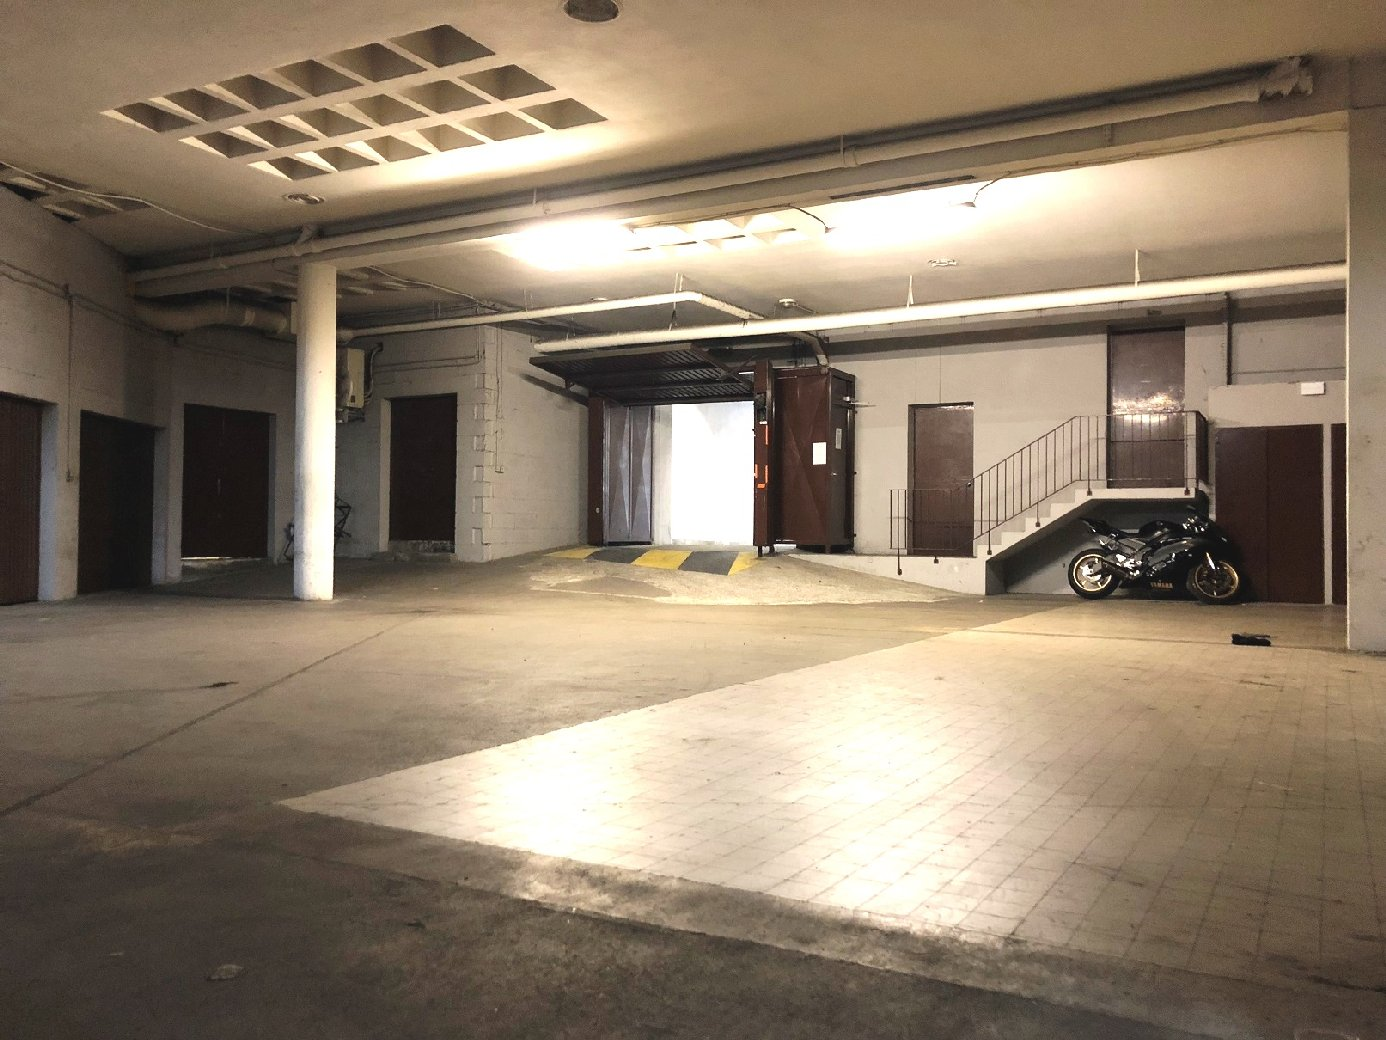 Vente garage annecy centre 1 pi ces 34 m2 for Garage reda annecy